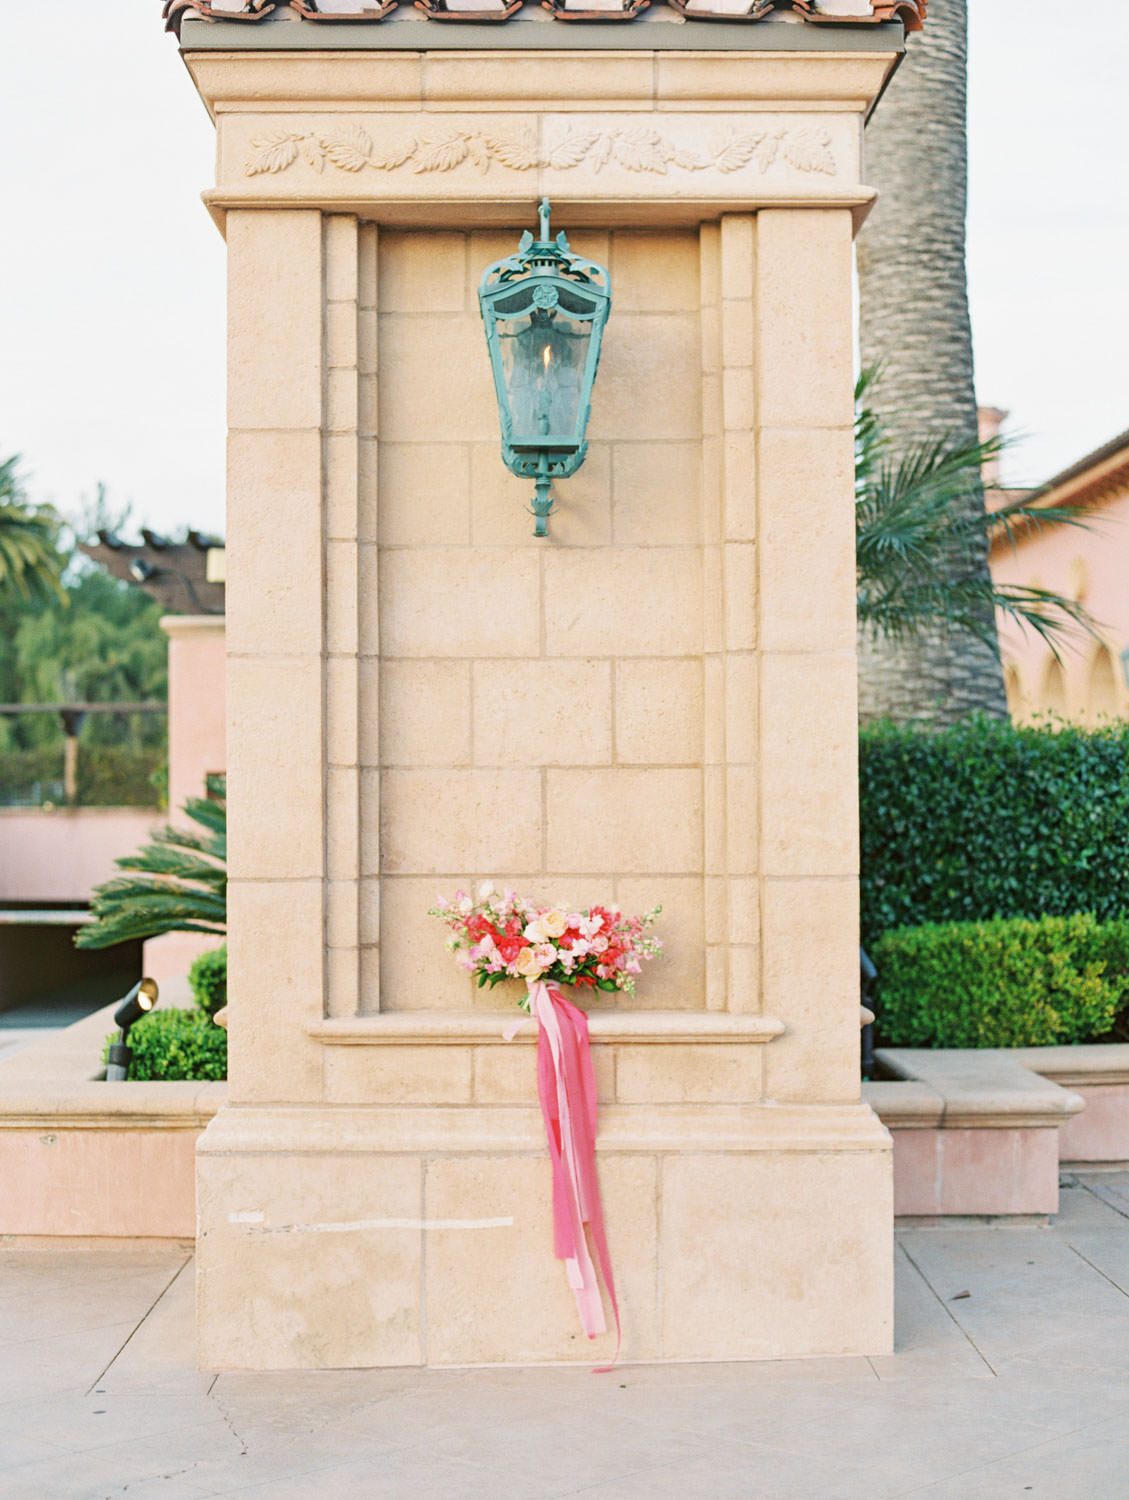 Large bridal bouquet with pink, fuschia, peach, ivory, and blush flowers and long pink ribbons resting on a column.